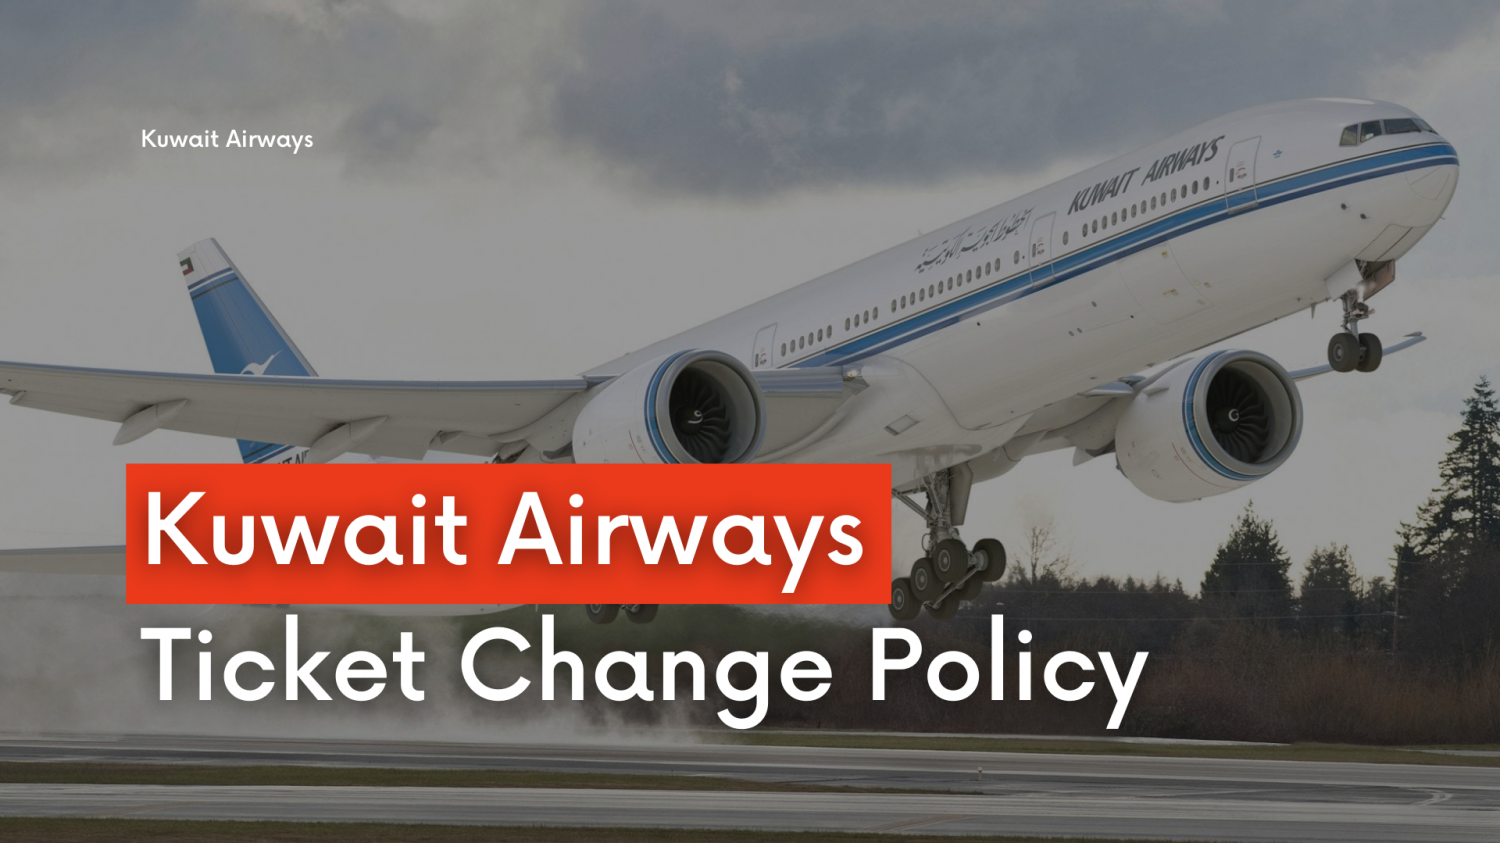 Know about Kuwait airways ticket change policy Infographic